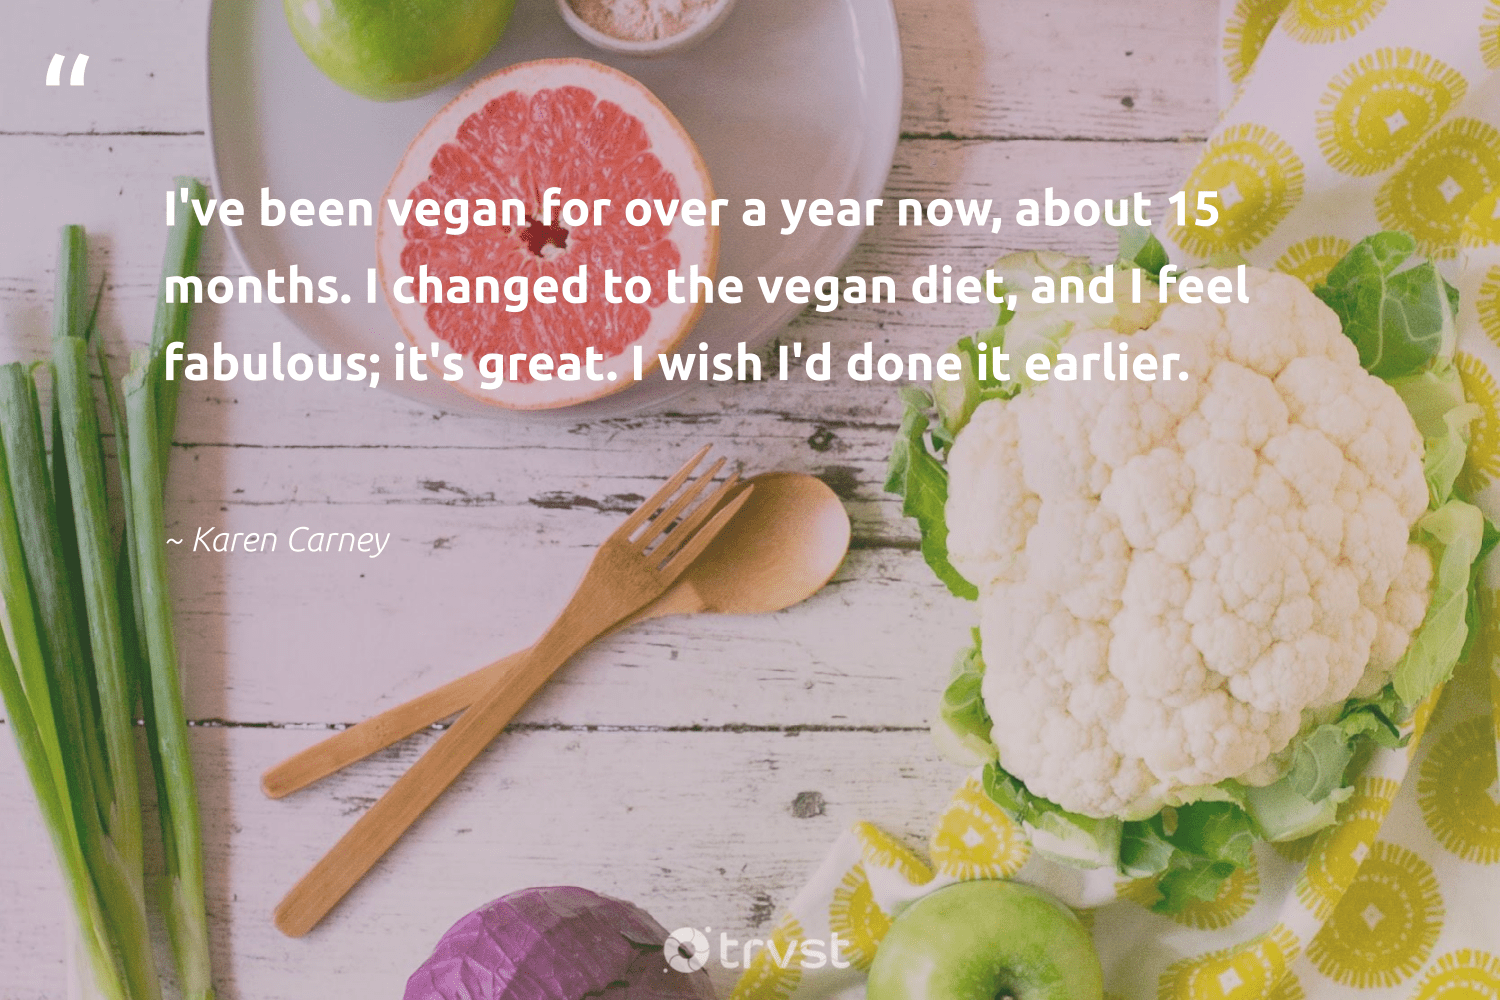 """I've been vegan for over a year now, about 15 months. I changed to the vegan diet, and I feel fabulous; it's great. I wish I'd done it earlier.""  - Karen Carney #trvst #quotes #vegan #vegetarian #sustainability #gogreen #thinkgreen #veganlife #sustainable #bethechange #changetheworld #veggie"